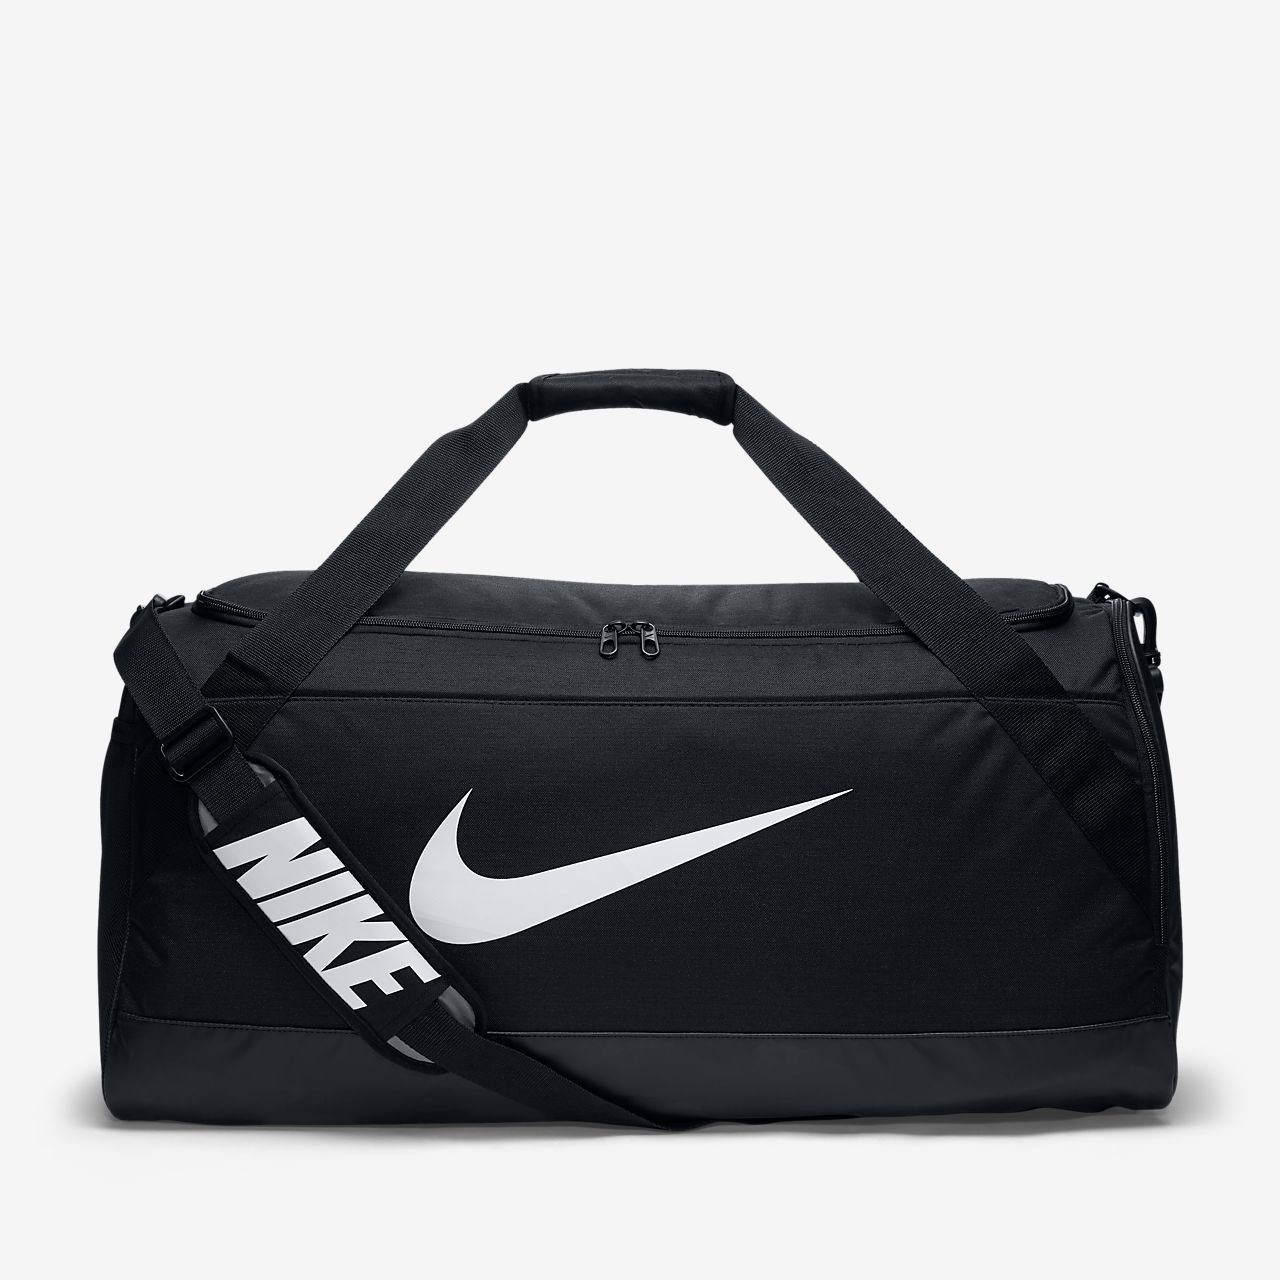 227e1e6aed Nike Brasilia (Large) Training Duffel Bag. Nike.com GB